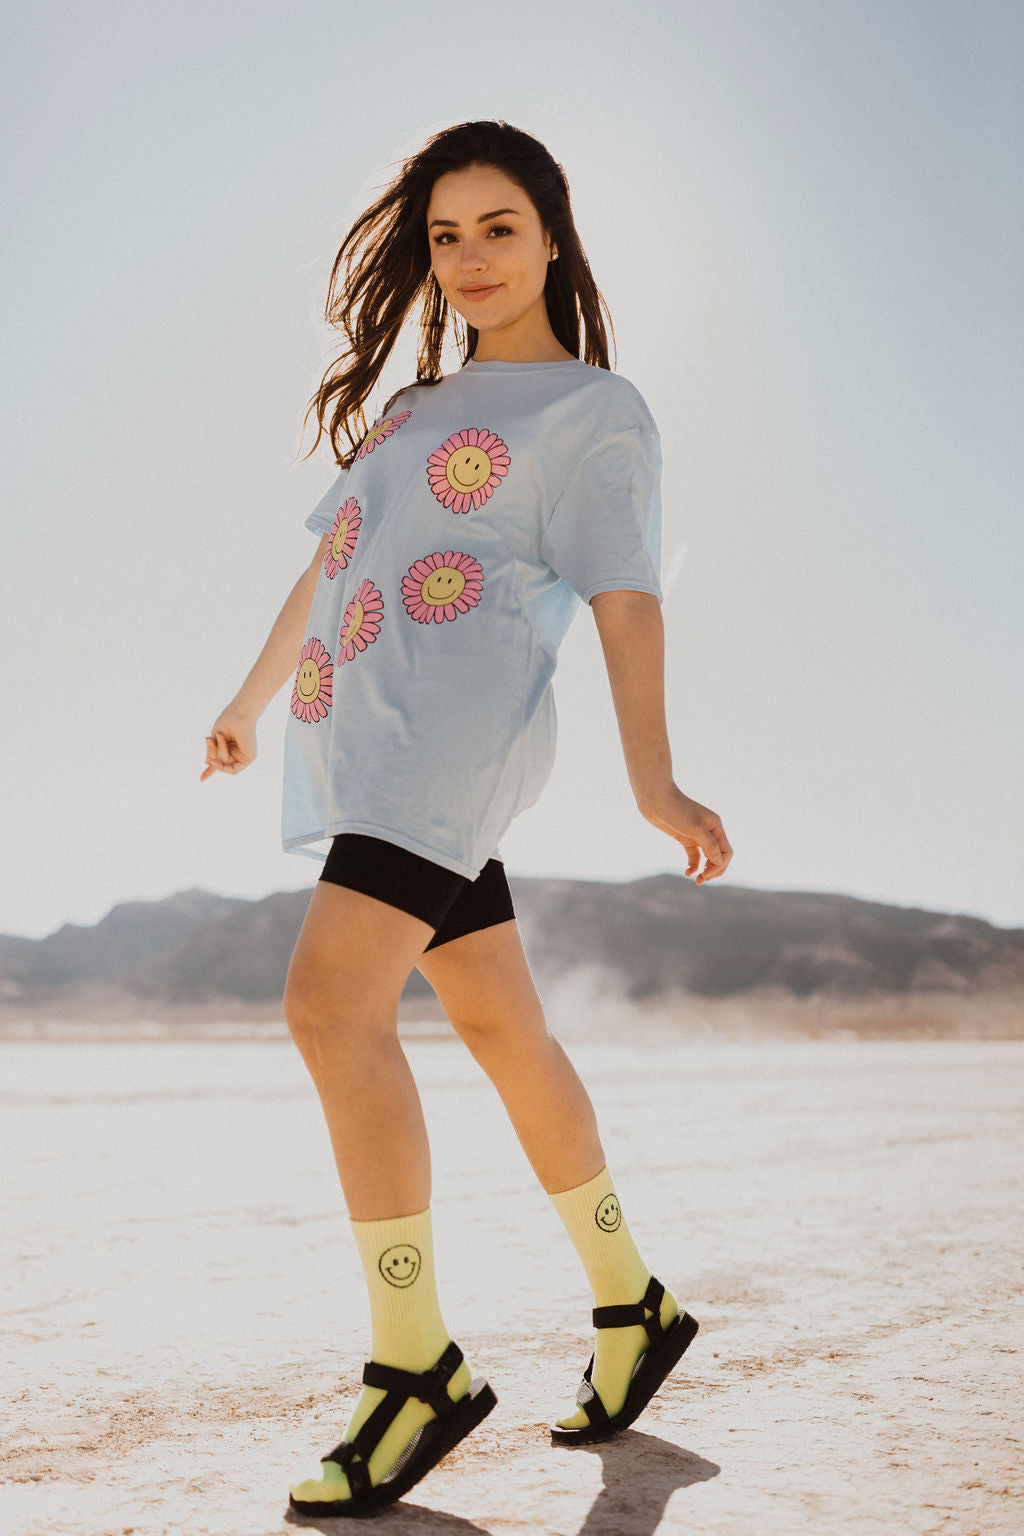 THE SMILING DAISY TEE IN LIGHT BLUE